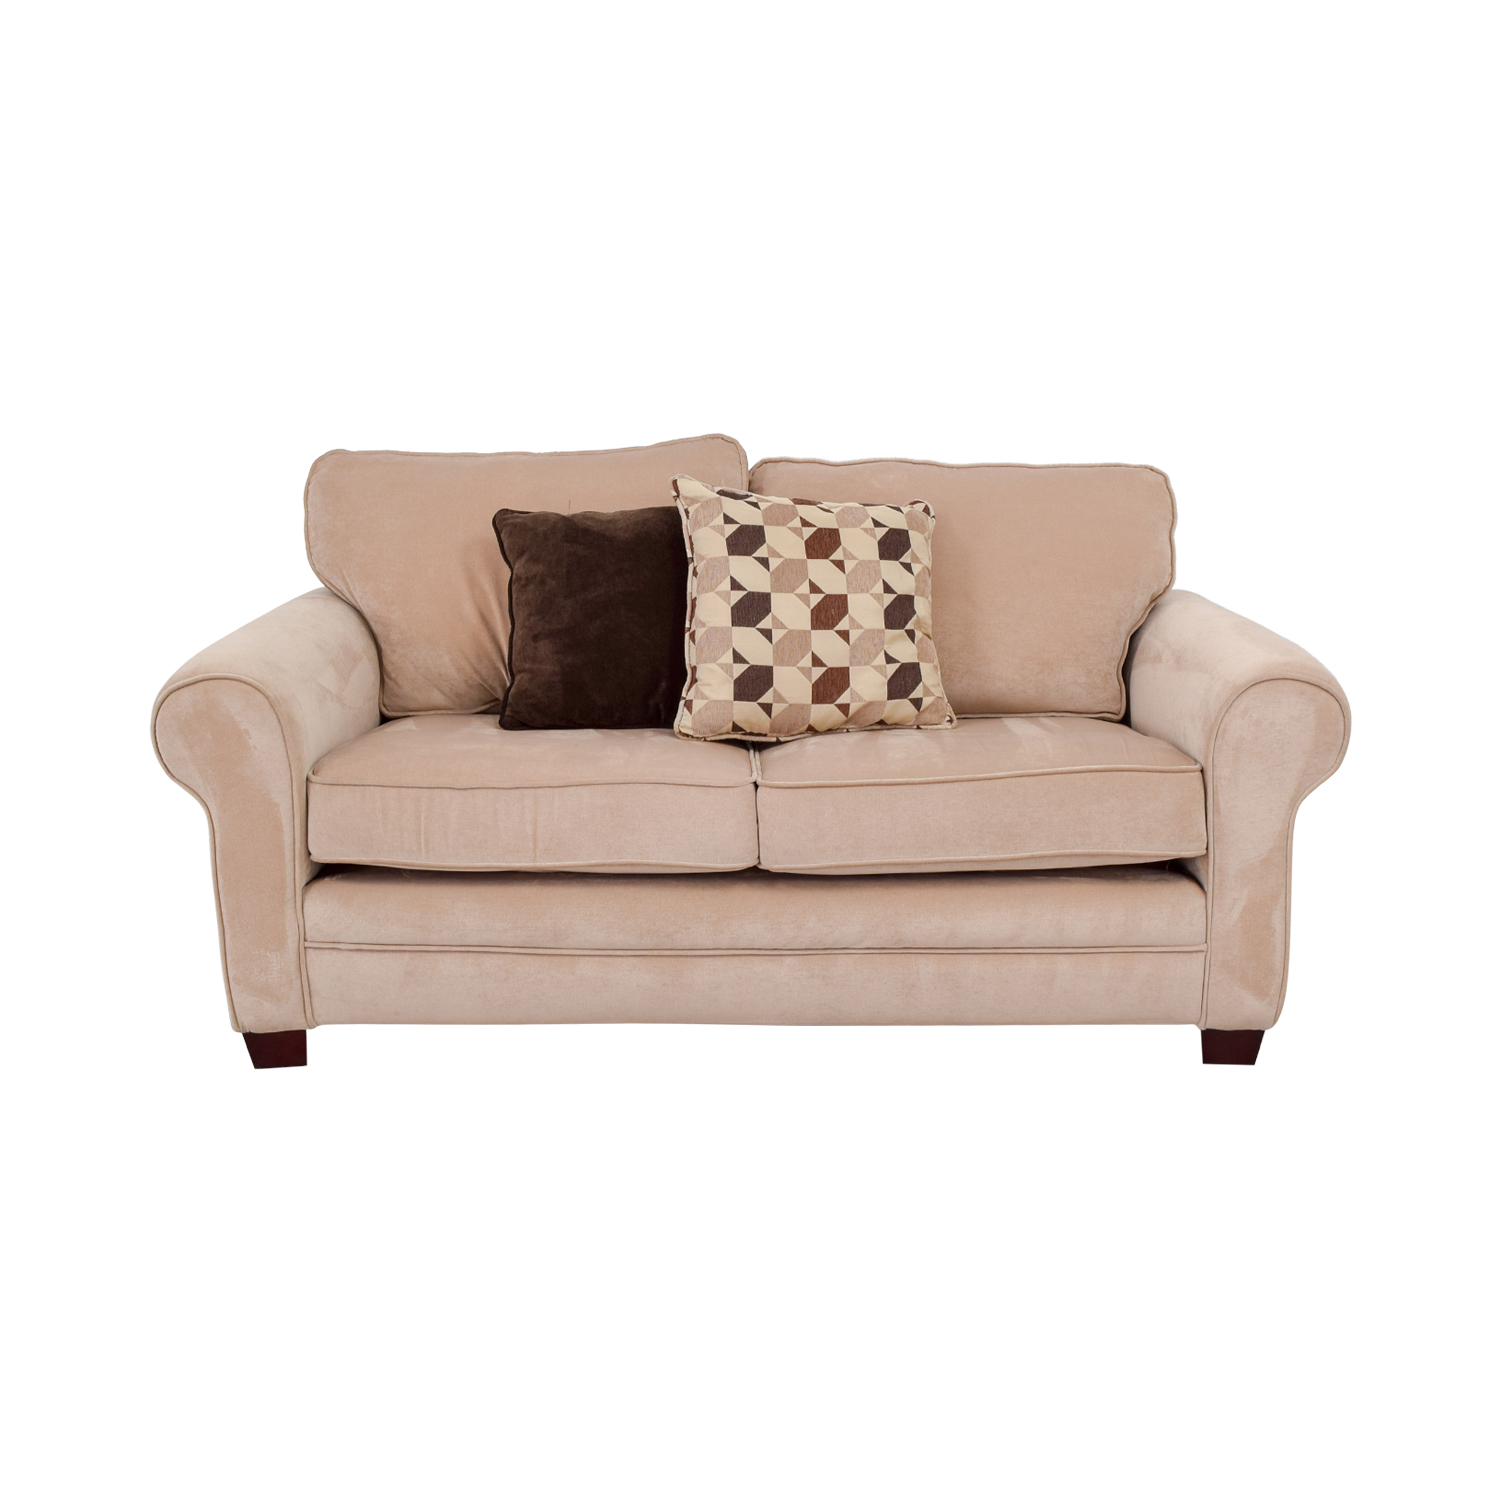 Stupendous 81 Off Bobs Discount Furniture Bobs Furniture Maggie Ii Beige Two Cushion Loveseat Sofas Gamerscity Chair Design For Home Gamerscityorg